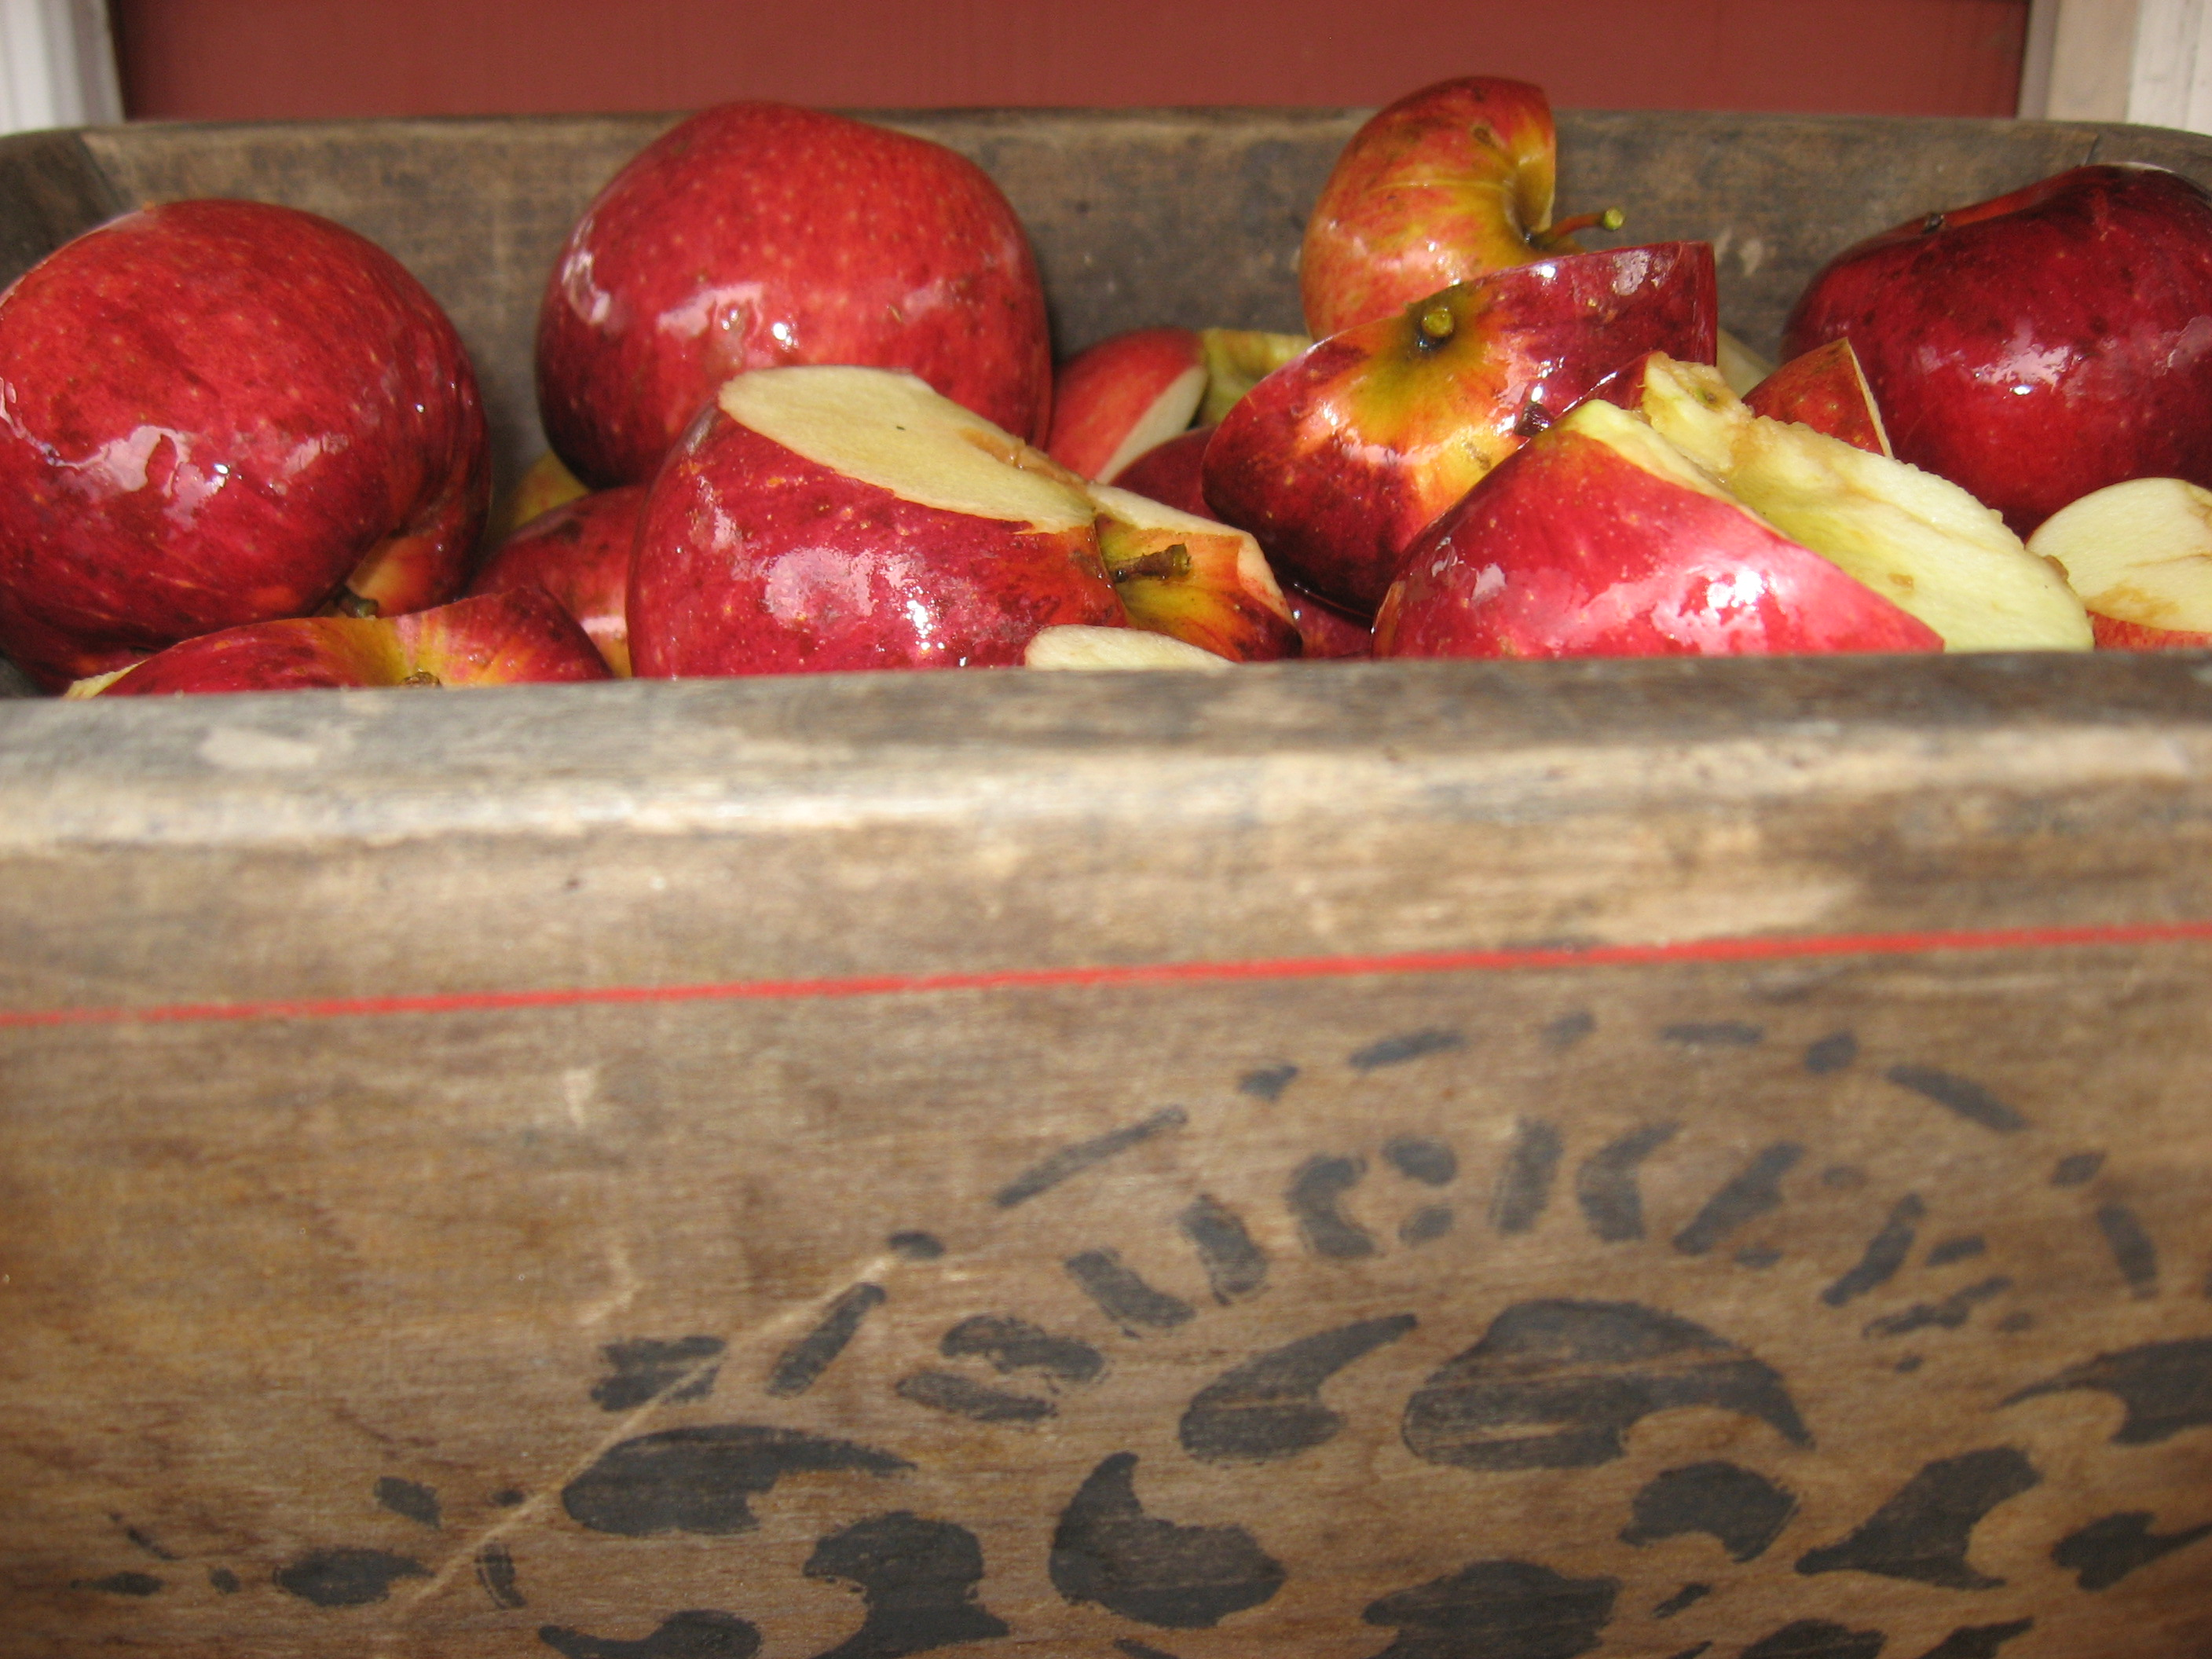 Apples ready for the cider press